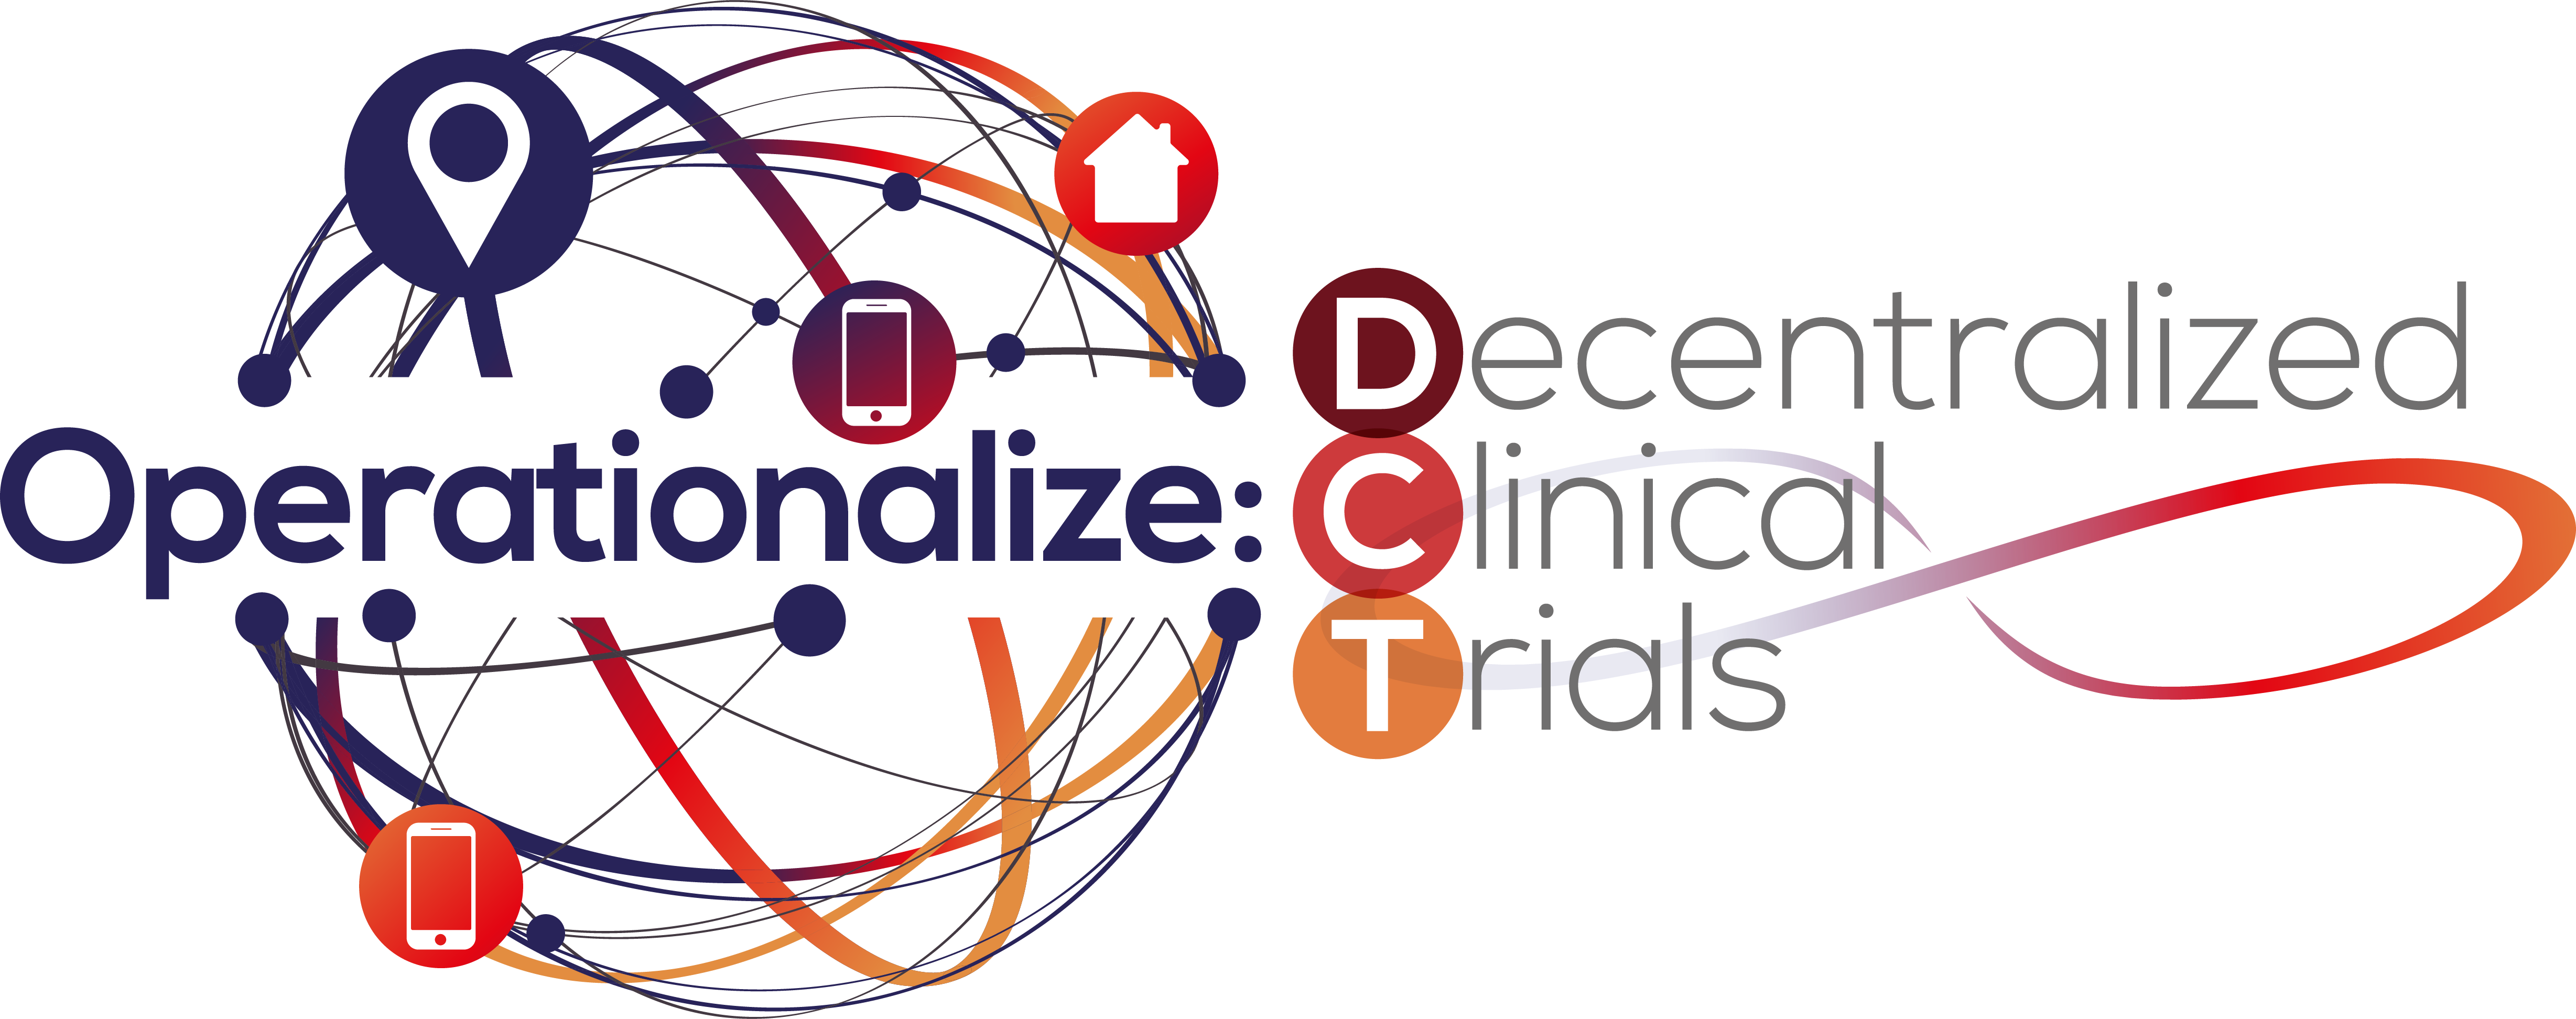 HW210319 19304 Operationalize Decentralized Clinical Trials Summit logo